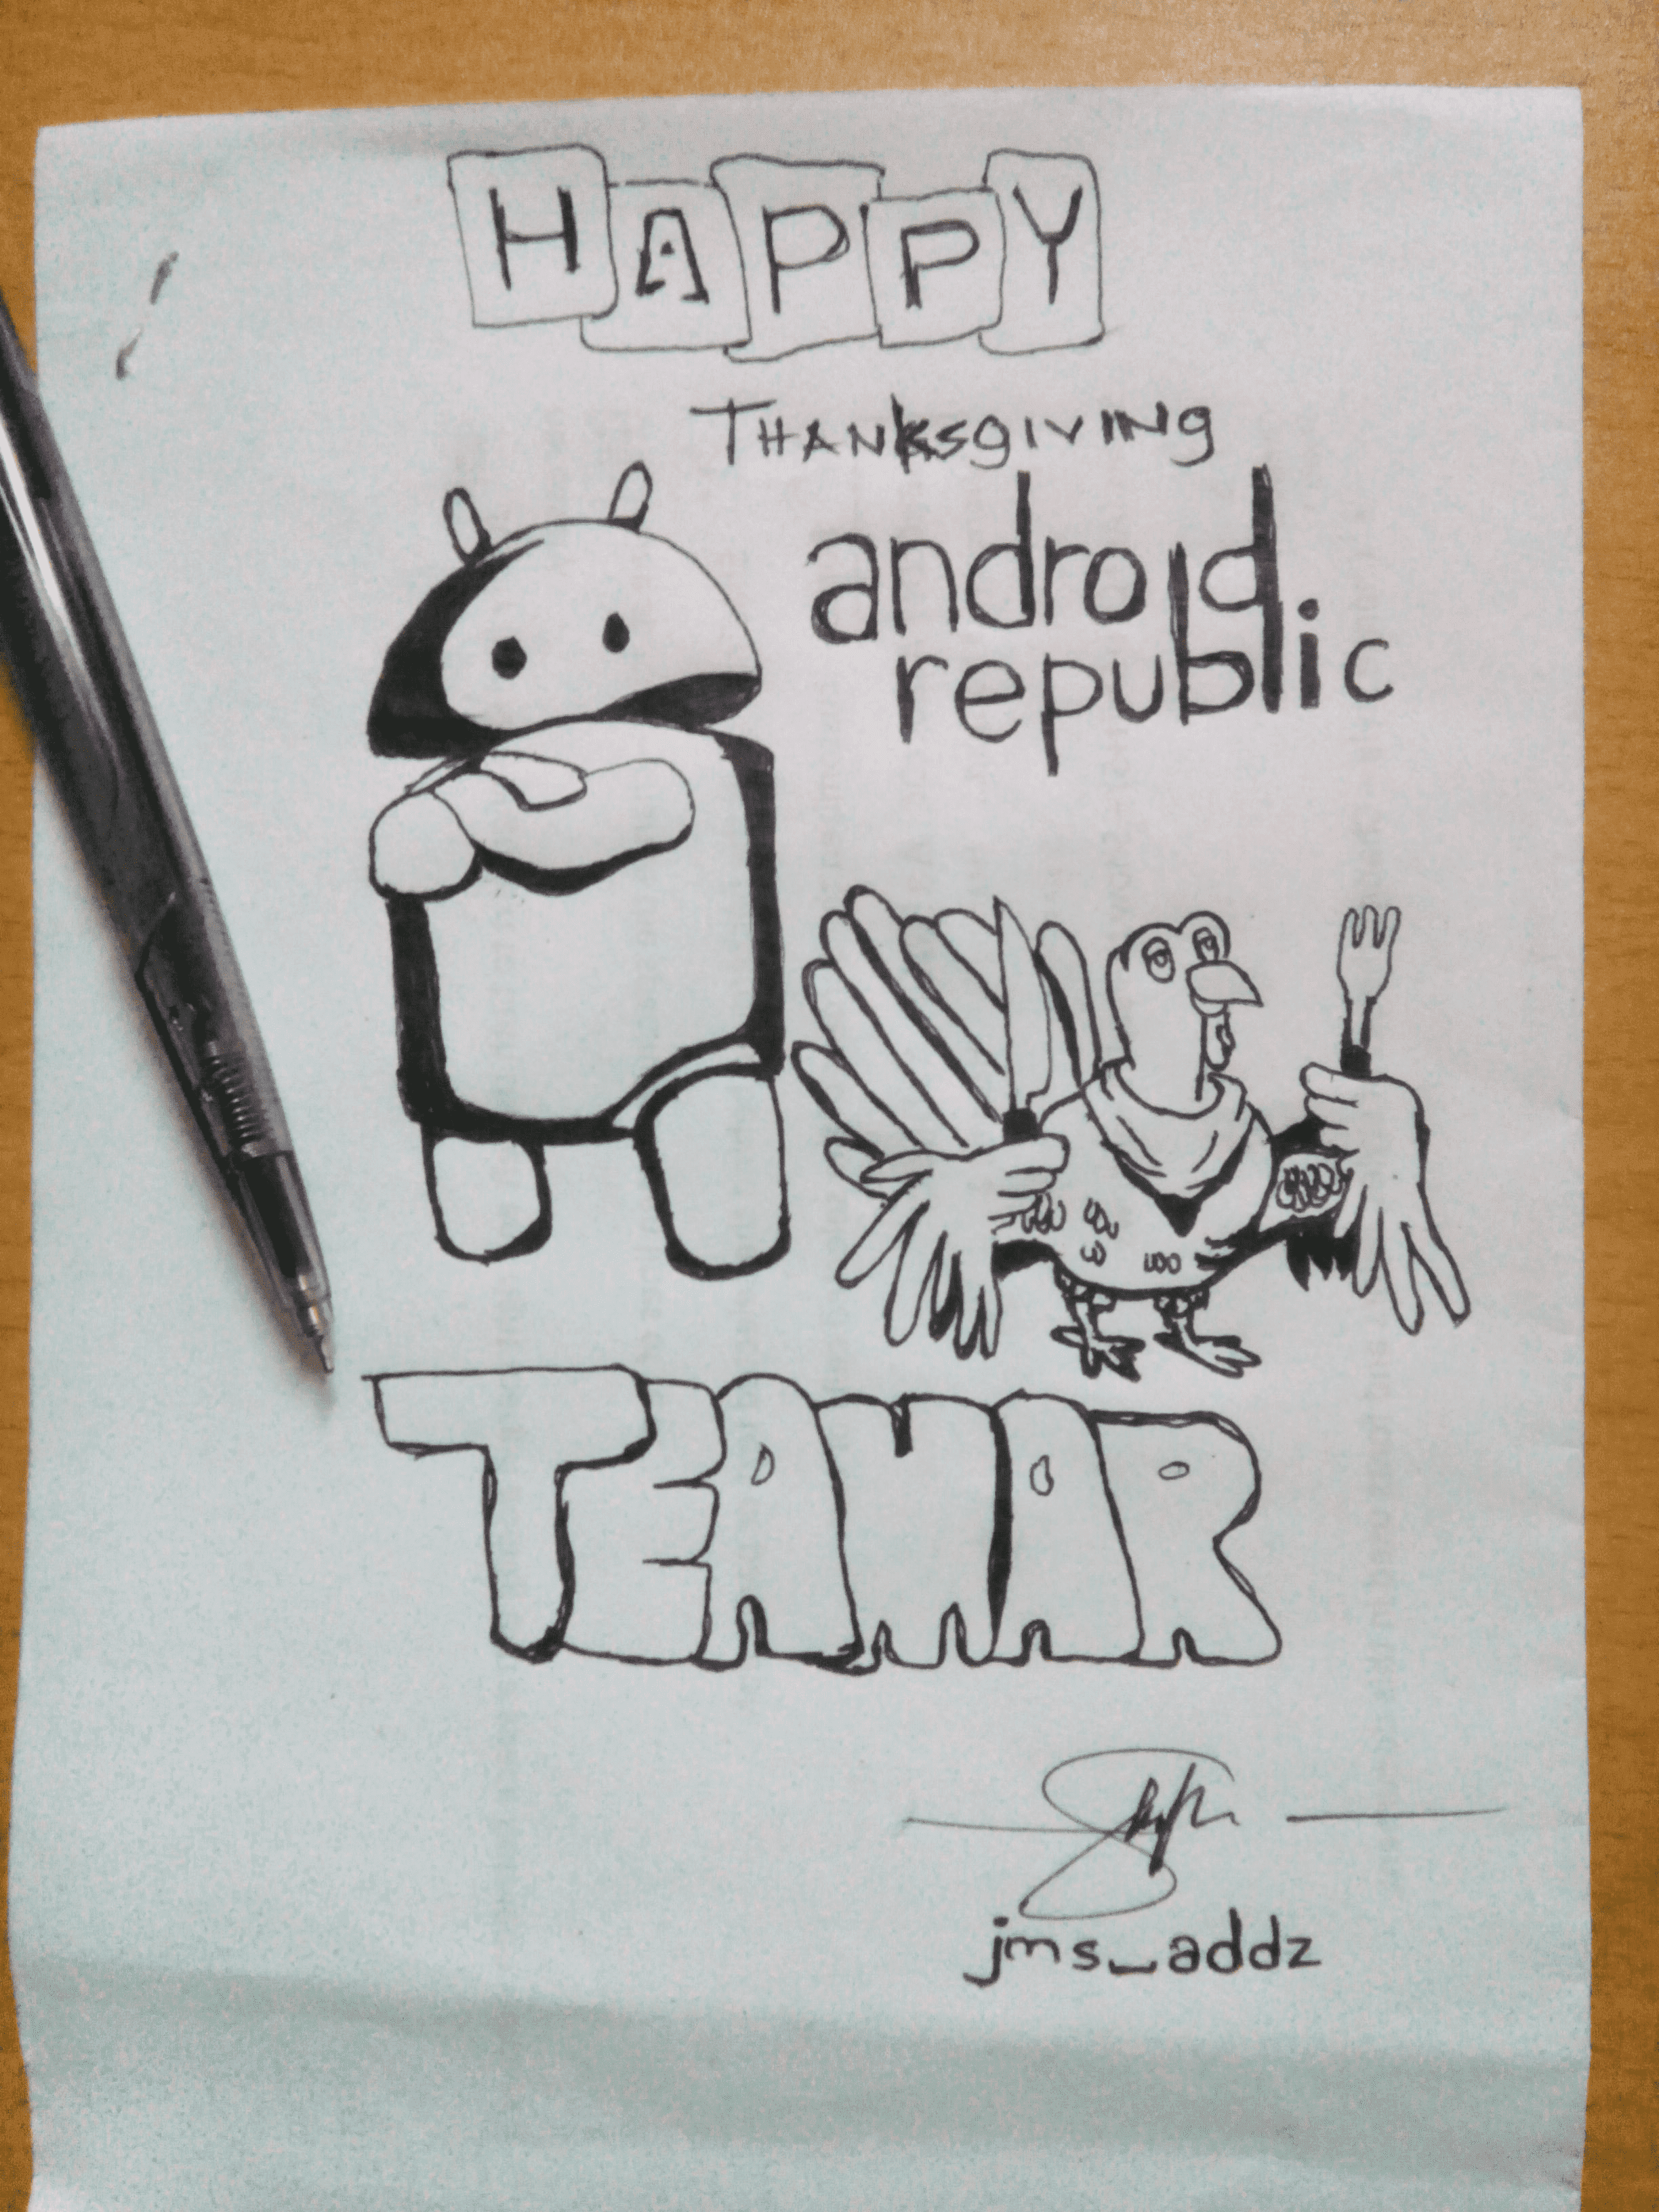 HAPPY-THANKSGIVING-TEAMAR.png